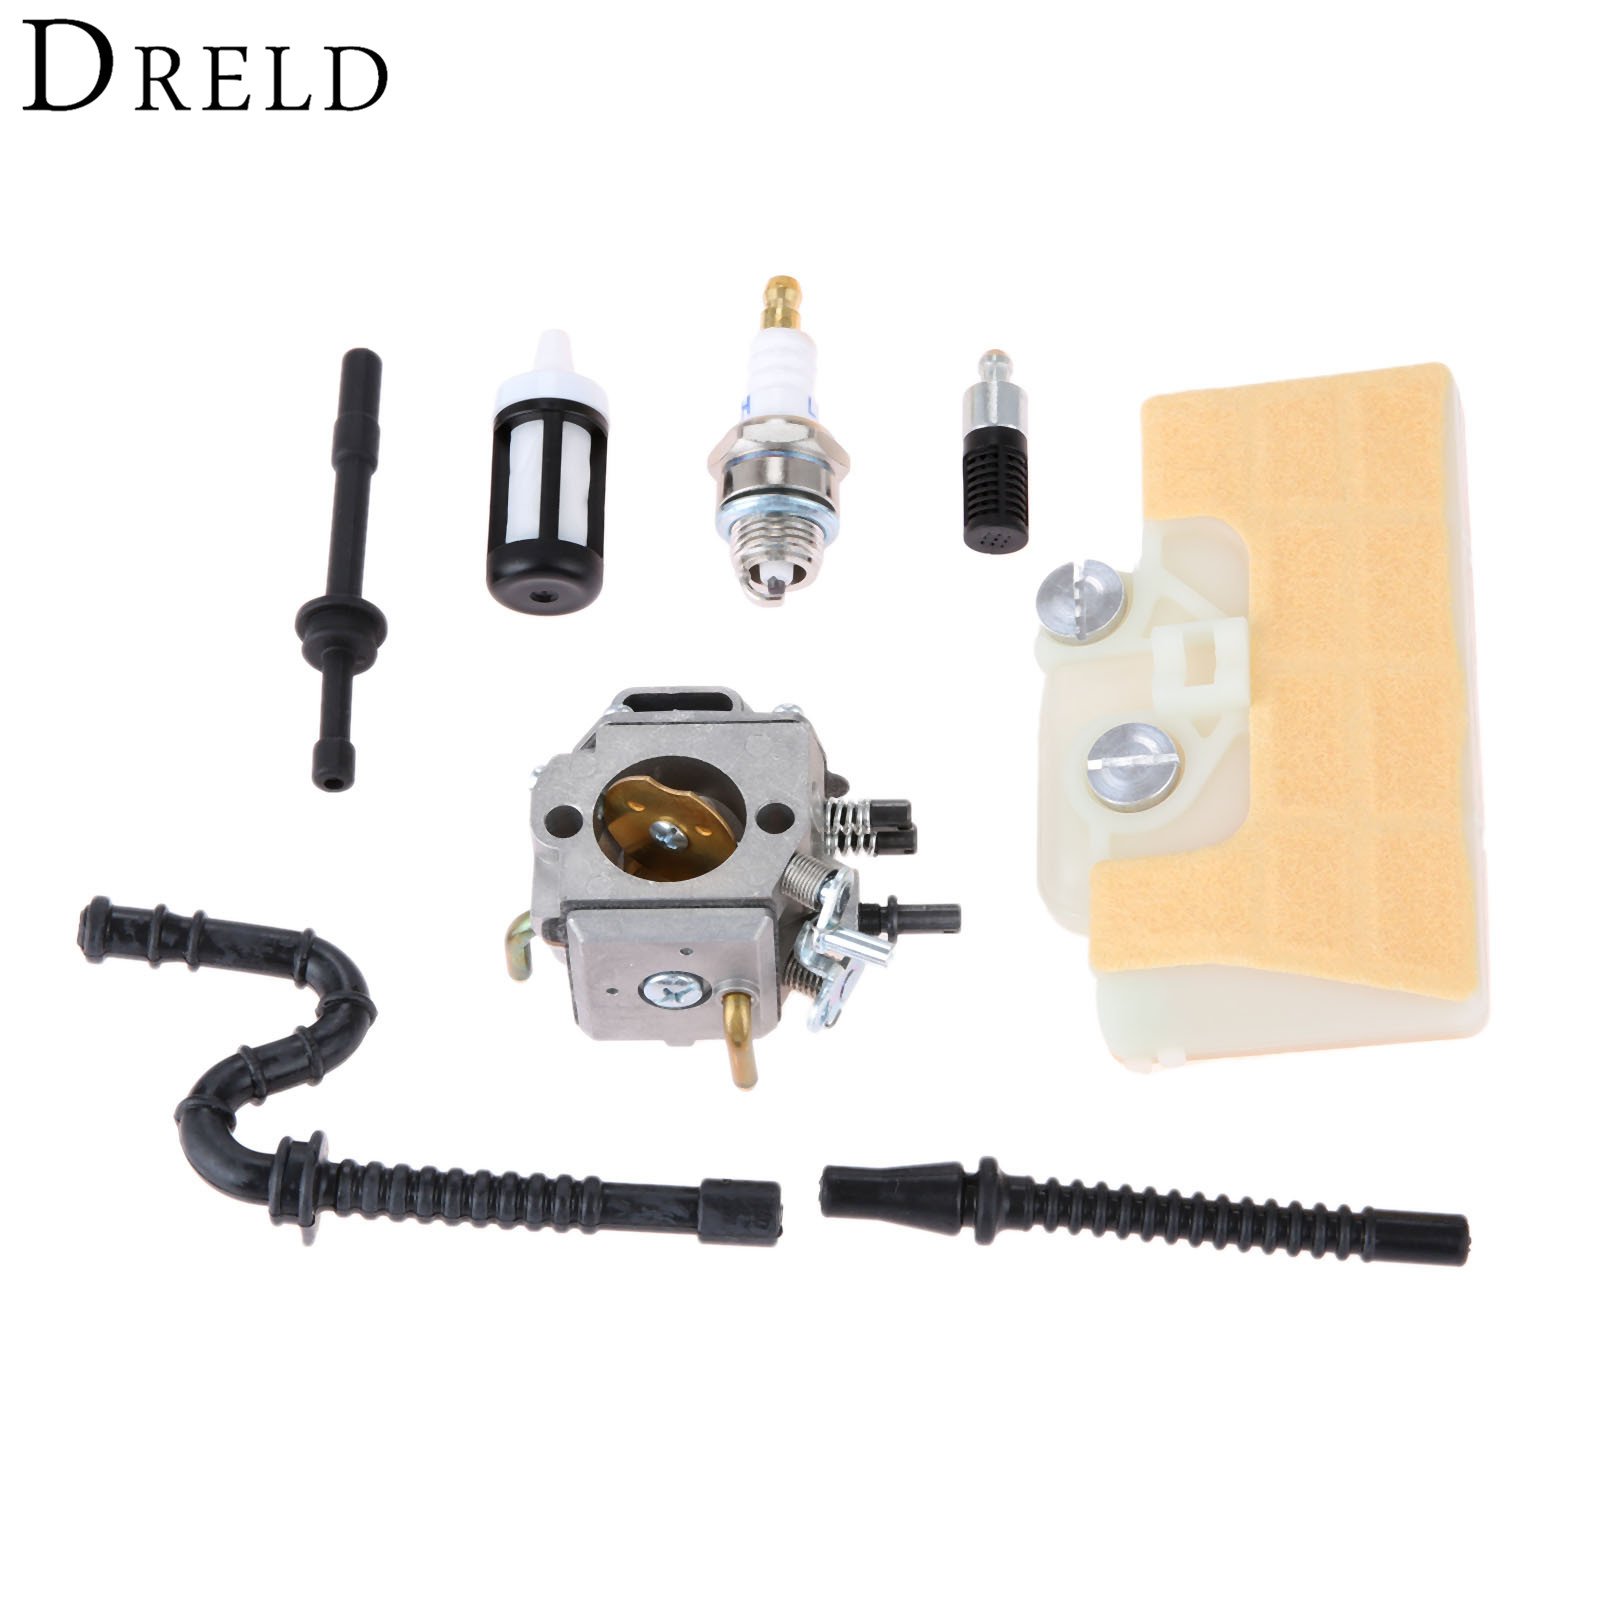 DRELD Carburetor Carb with Air Filter Fuel Line Spark Plug Repower Kit for STIHL MS290 MS310 MS390 029 039 Chainsaw Garden Tools carburetor rebuild repair carb kit fits for stihl ms361 ms290 ms390 ms440 ms460 chainsaw carb kit walbro k10 hd